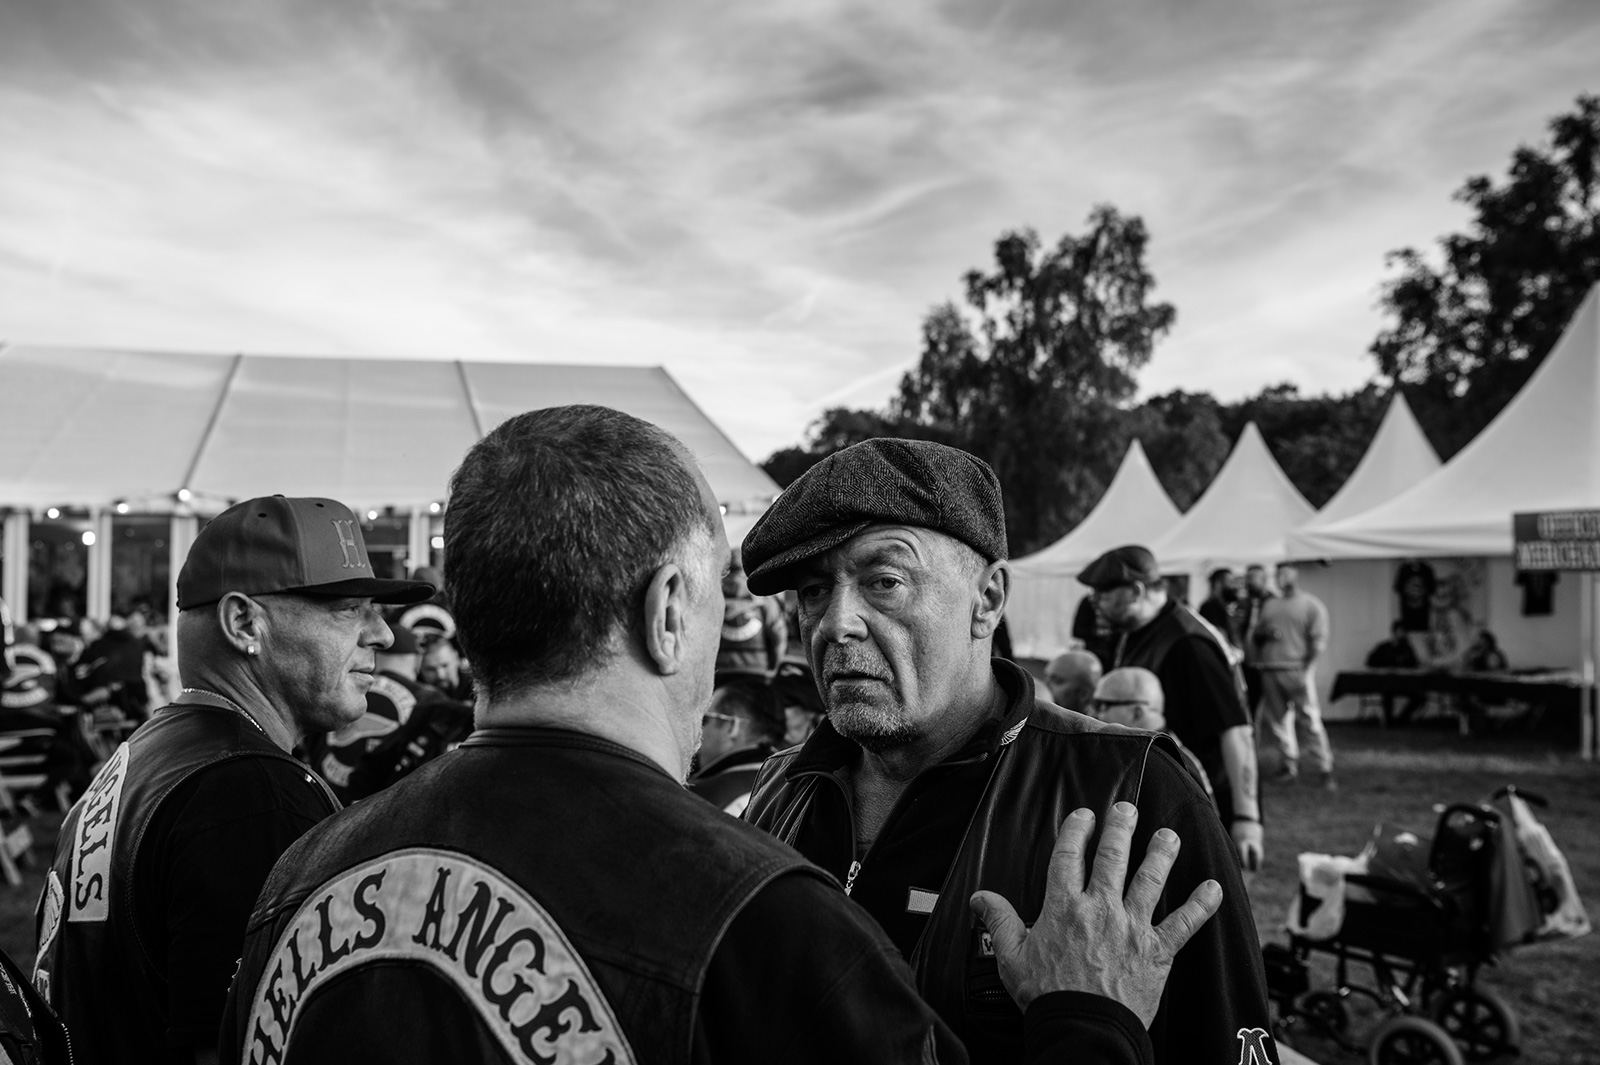 The Hells Angels Come to Leafy Surrey – Andrew Shaylor